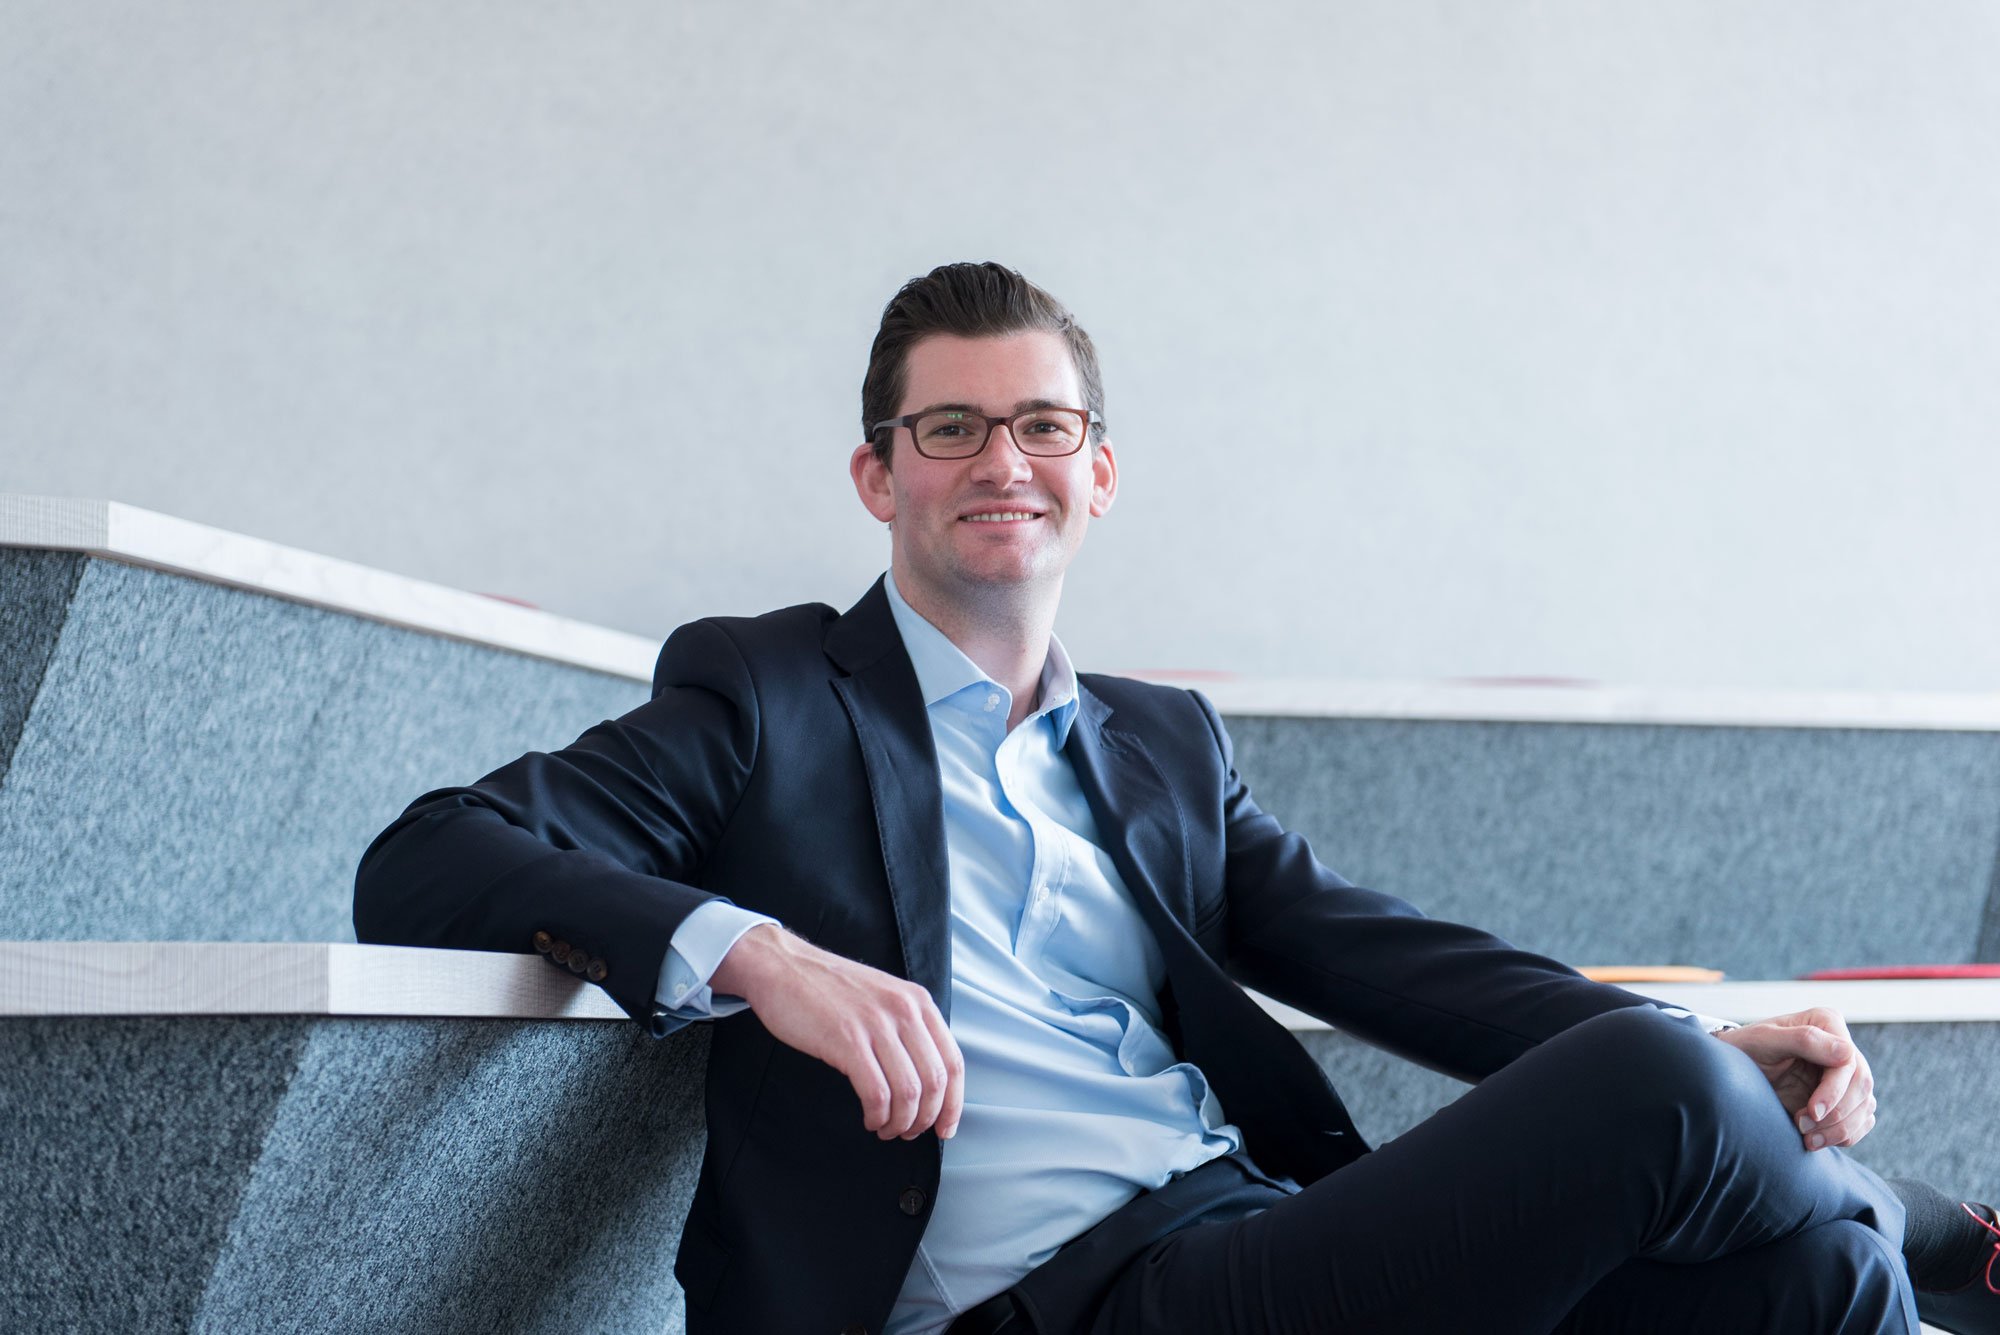 Phil Pezus has advanced from trainee to CFO in record time.